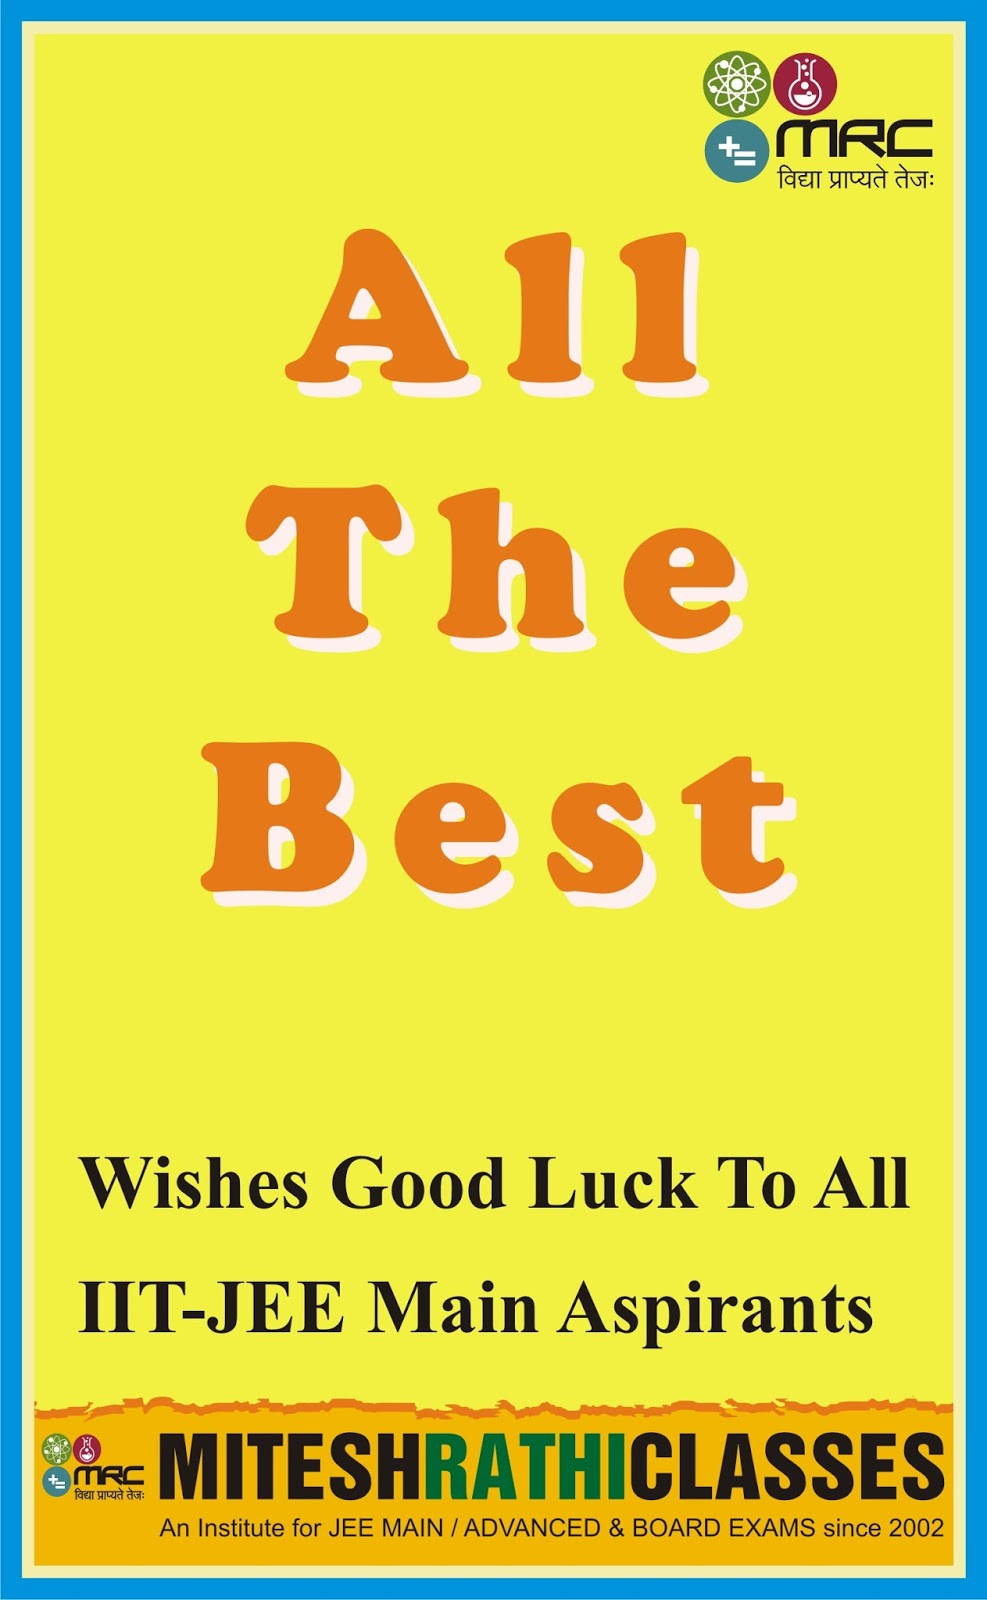 Mitesh Rathi Classes, IIT JEE Coaching Institute In Bhopal For JEE Main,  Advanced U0026 Board Exam: ALL THE BEST FOR JEE MAIN 2016 EXAM, BEST OF LUCK  FOR ALL ...  Exam Best Wishes Cards